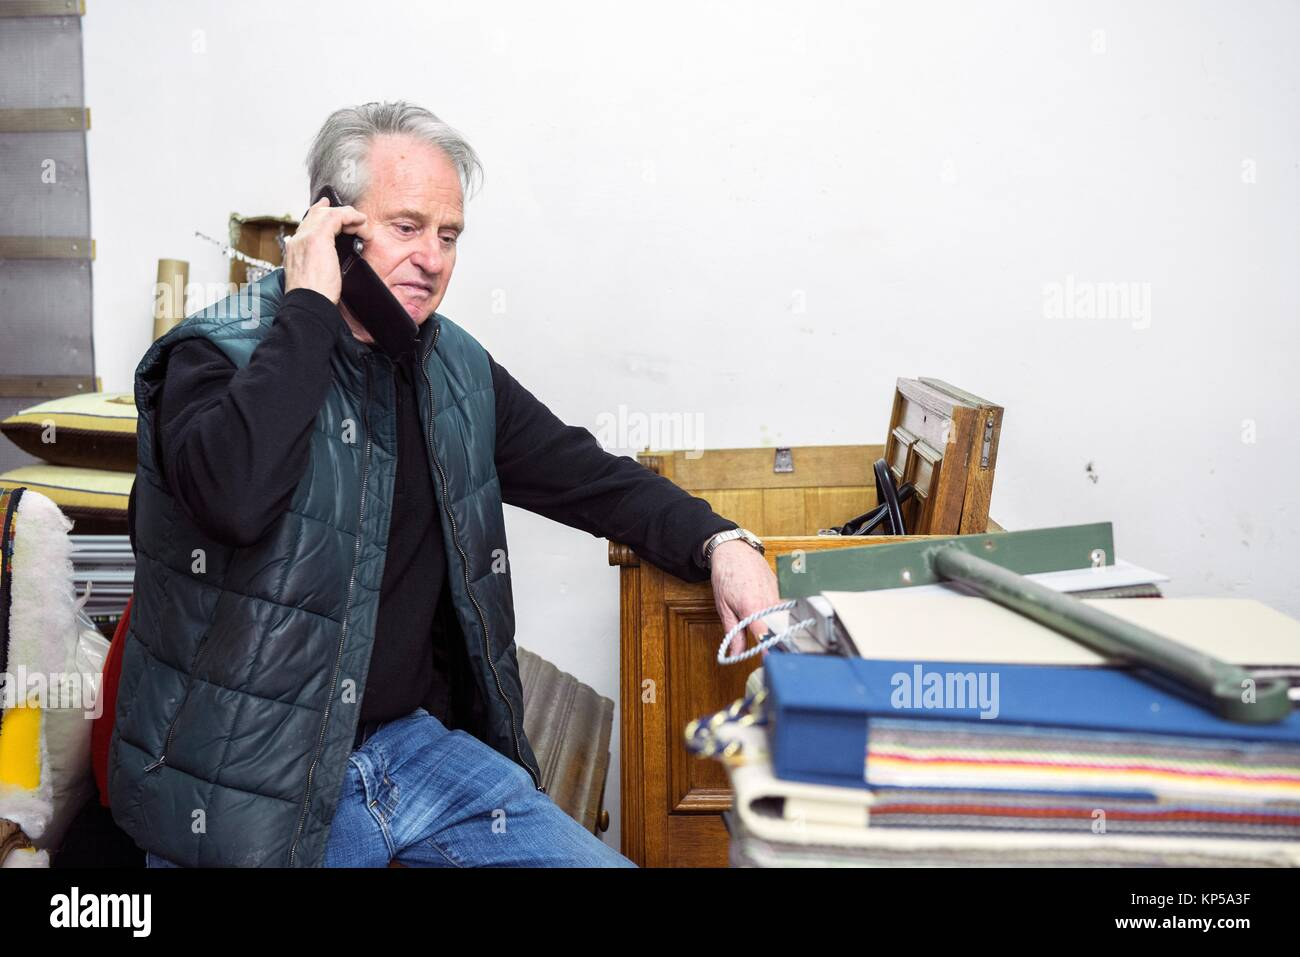 Tilburg, Netherlands. The 75 year old upholsterer Boy making his last phonecalls before partially retiring and moving - Stock Image